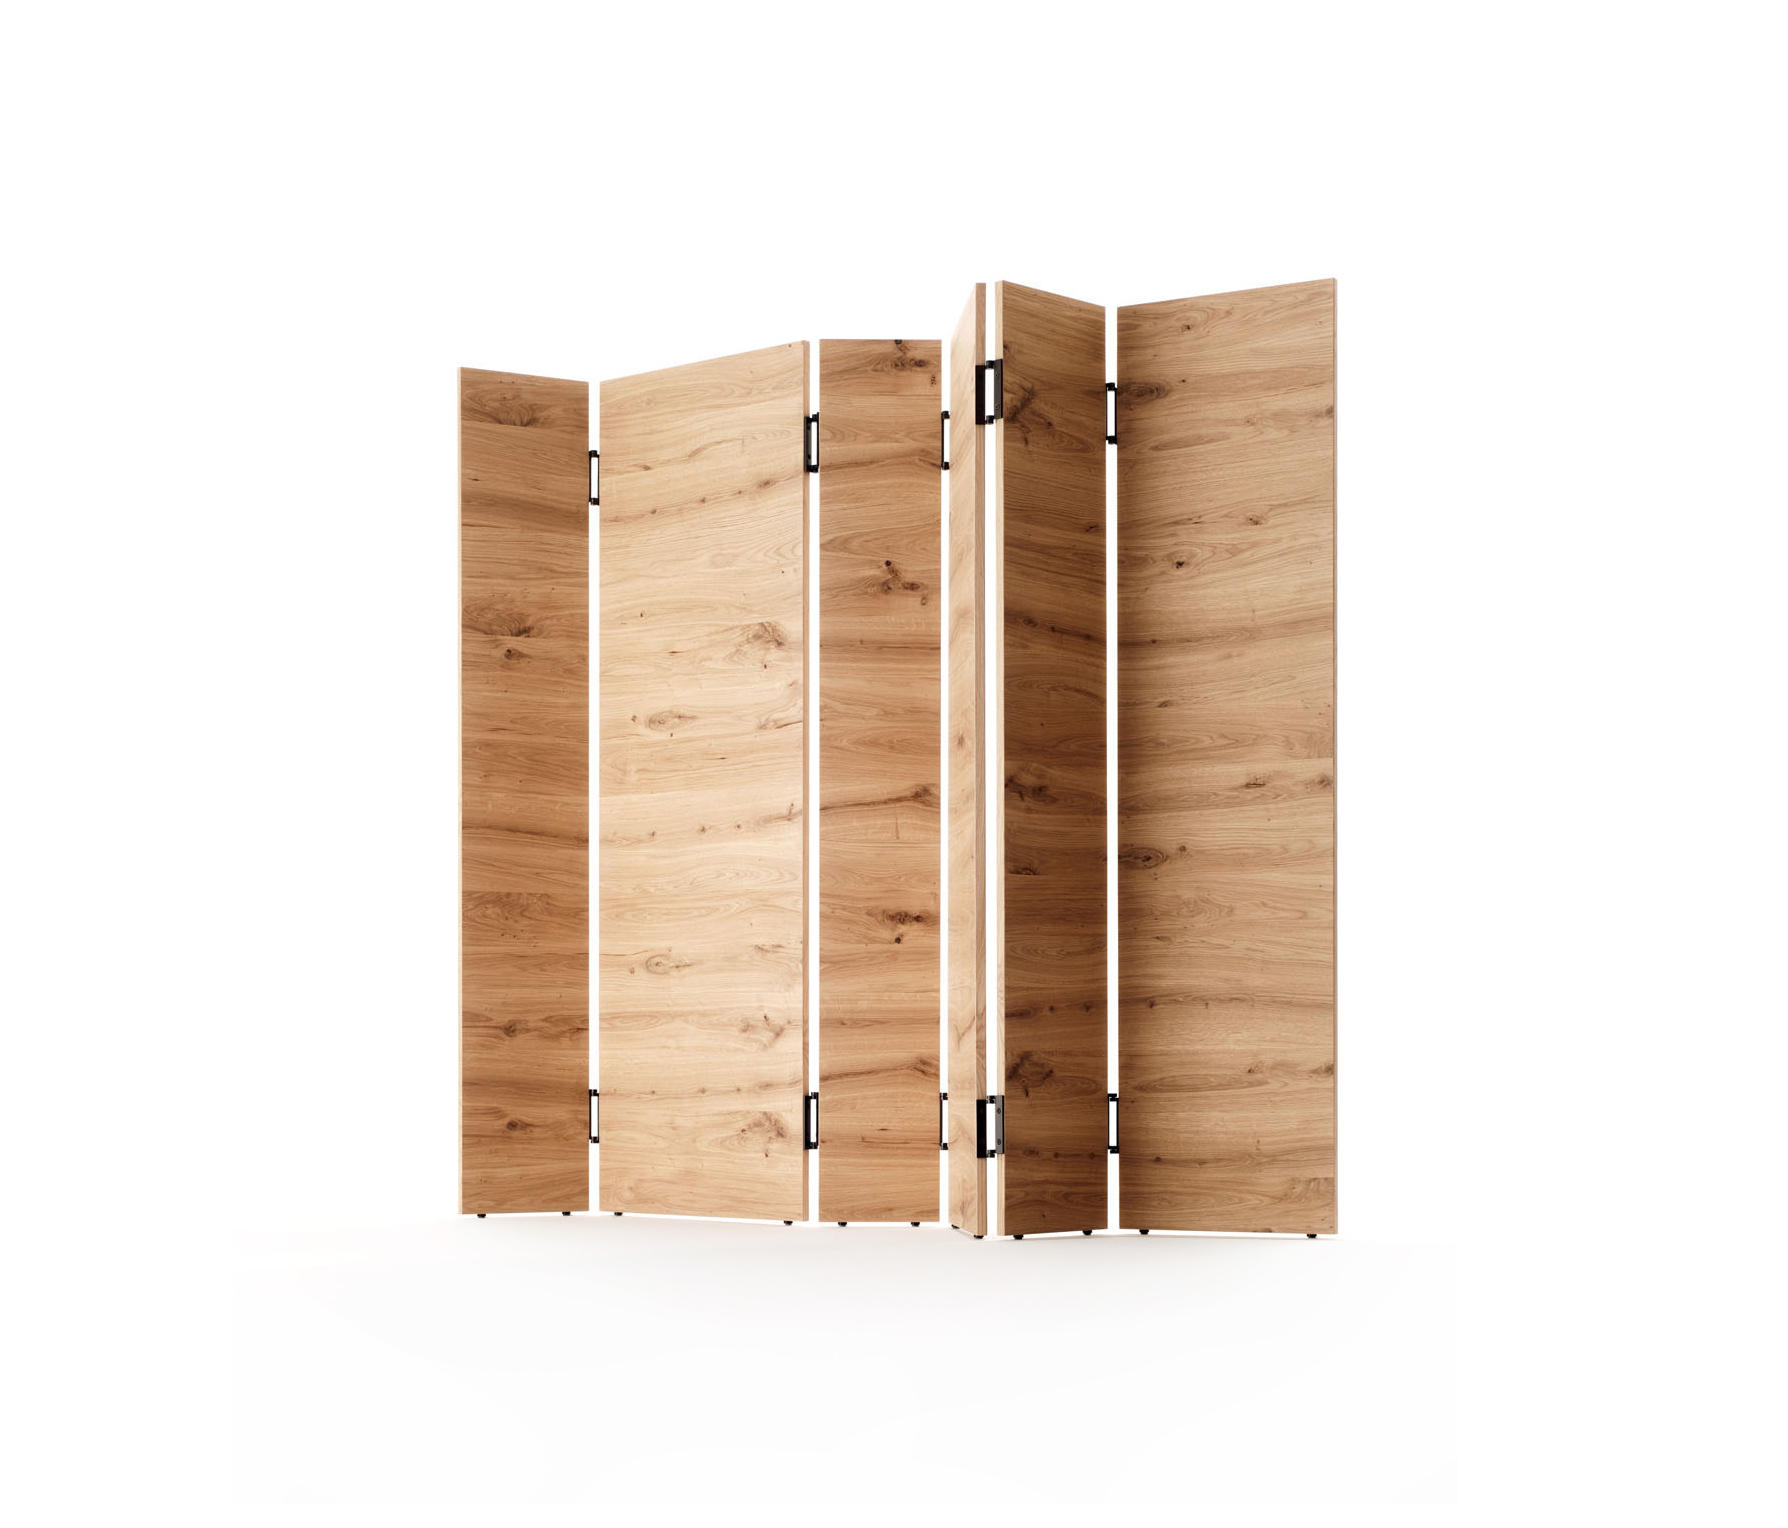 manhattan moveable folding screen space dividers from neue wiener werkst tte architonic. Black Bedroom Furniture Sets. Home Design Ideas